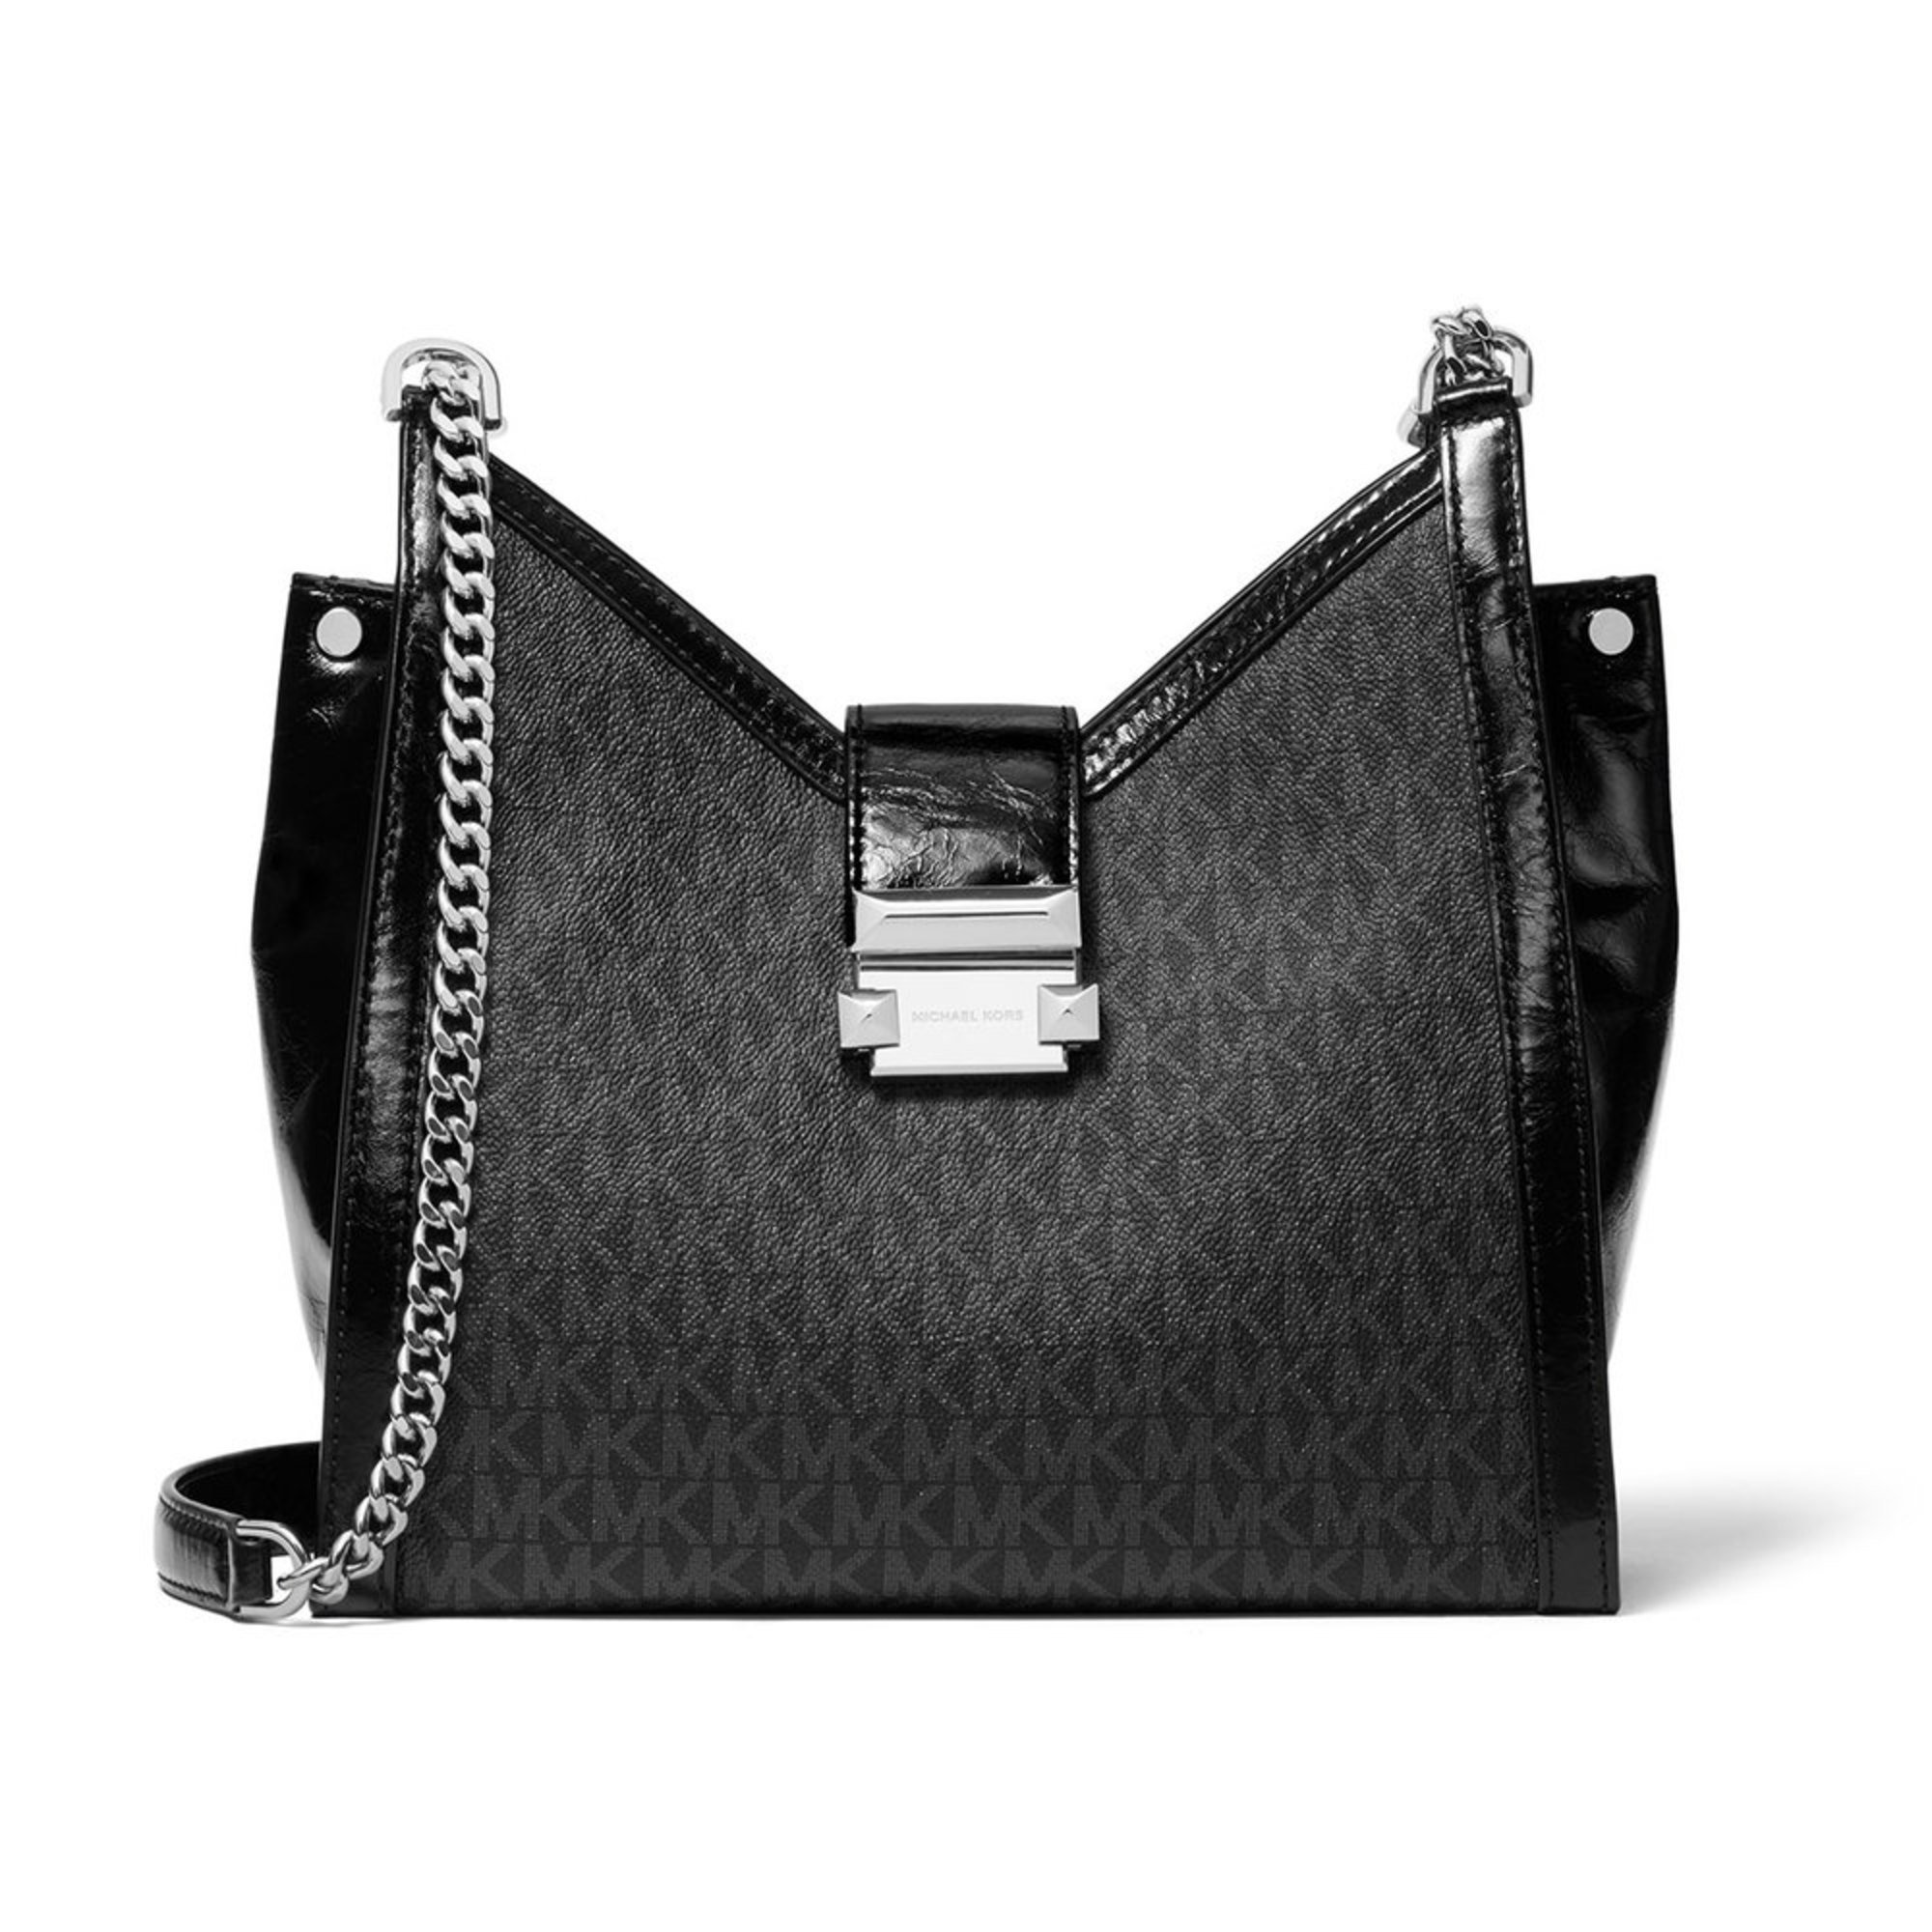 420189c852201 Michael Kors Whitney Small Chain Shoulder Tote